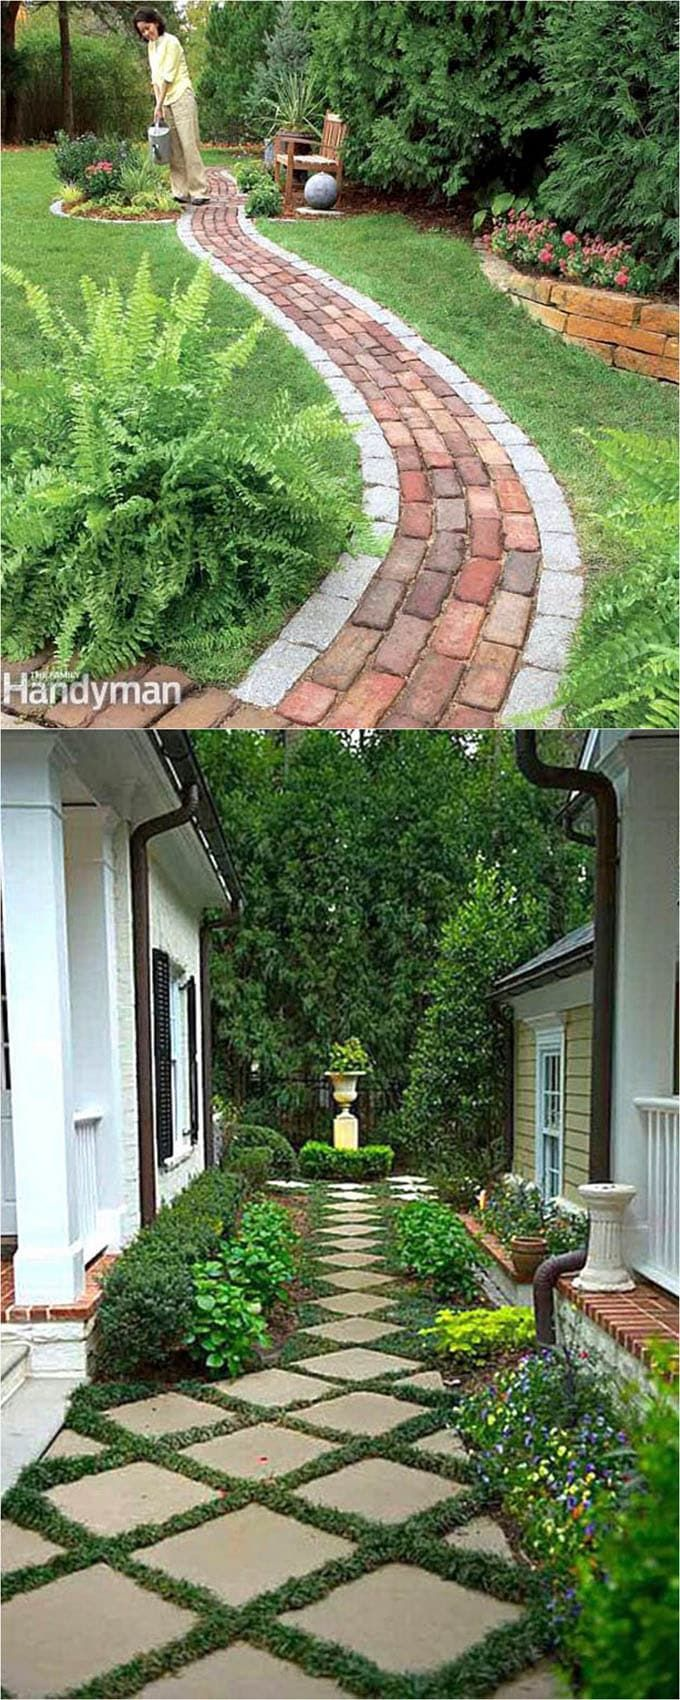 The 25+ best Landscaping ideas ideas on Pinterest | Diy ...